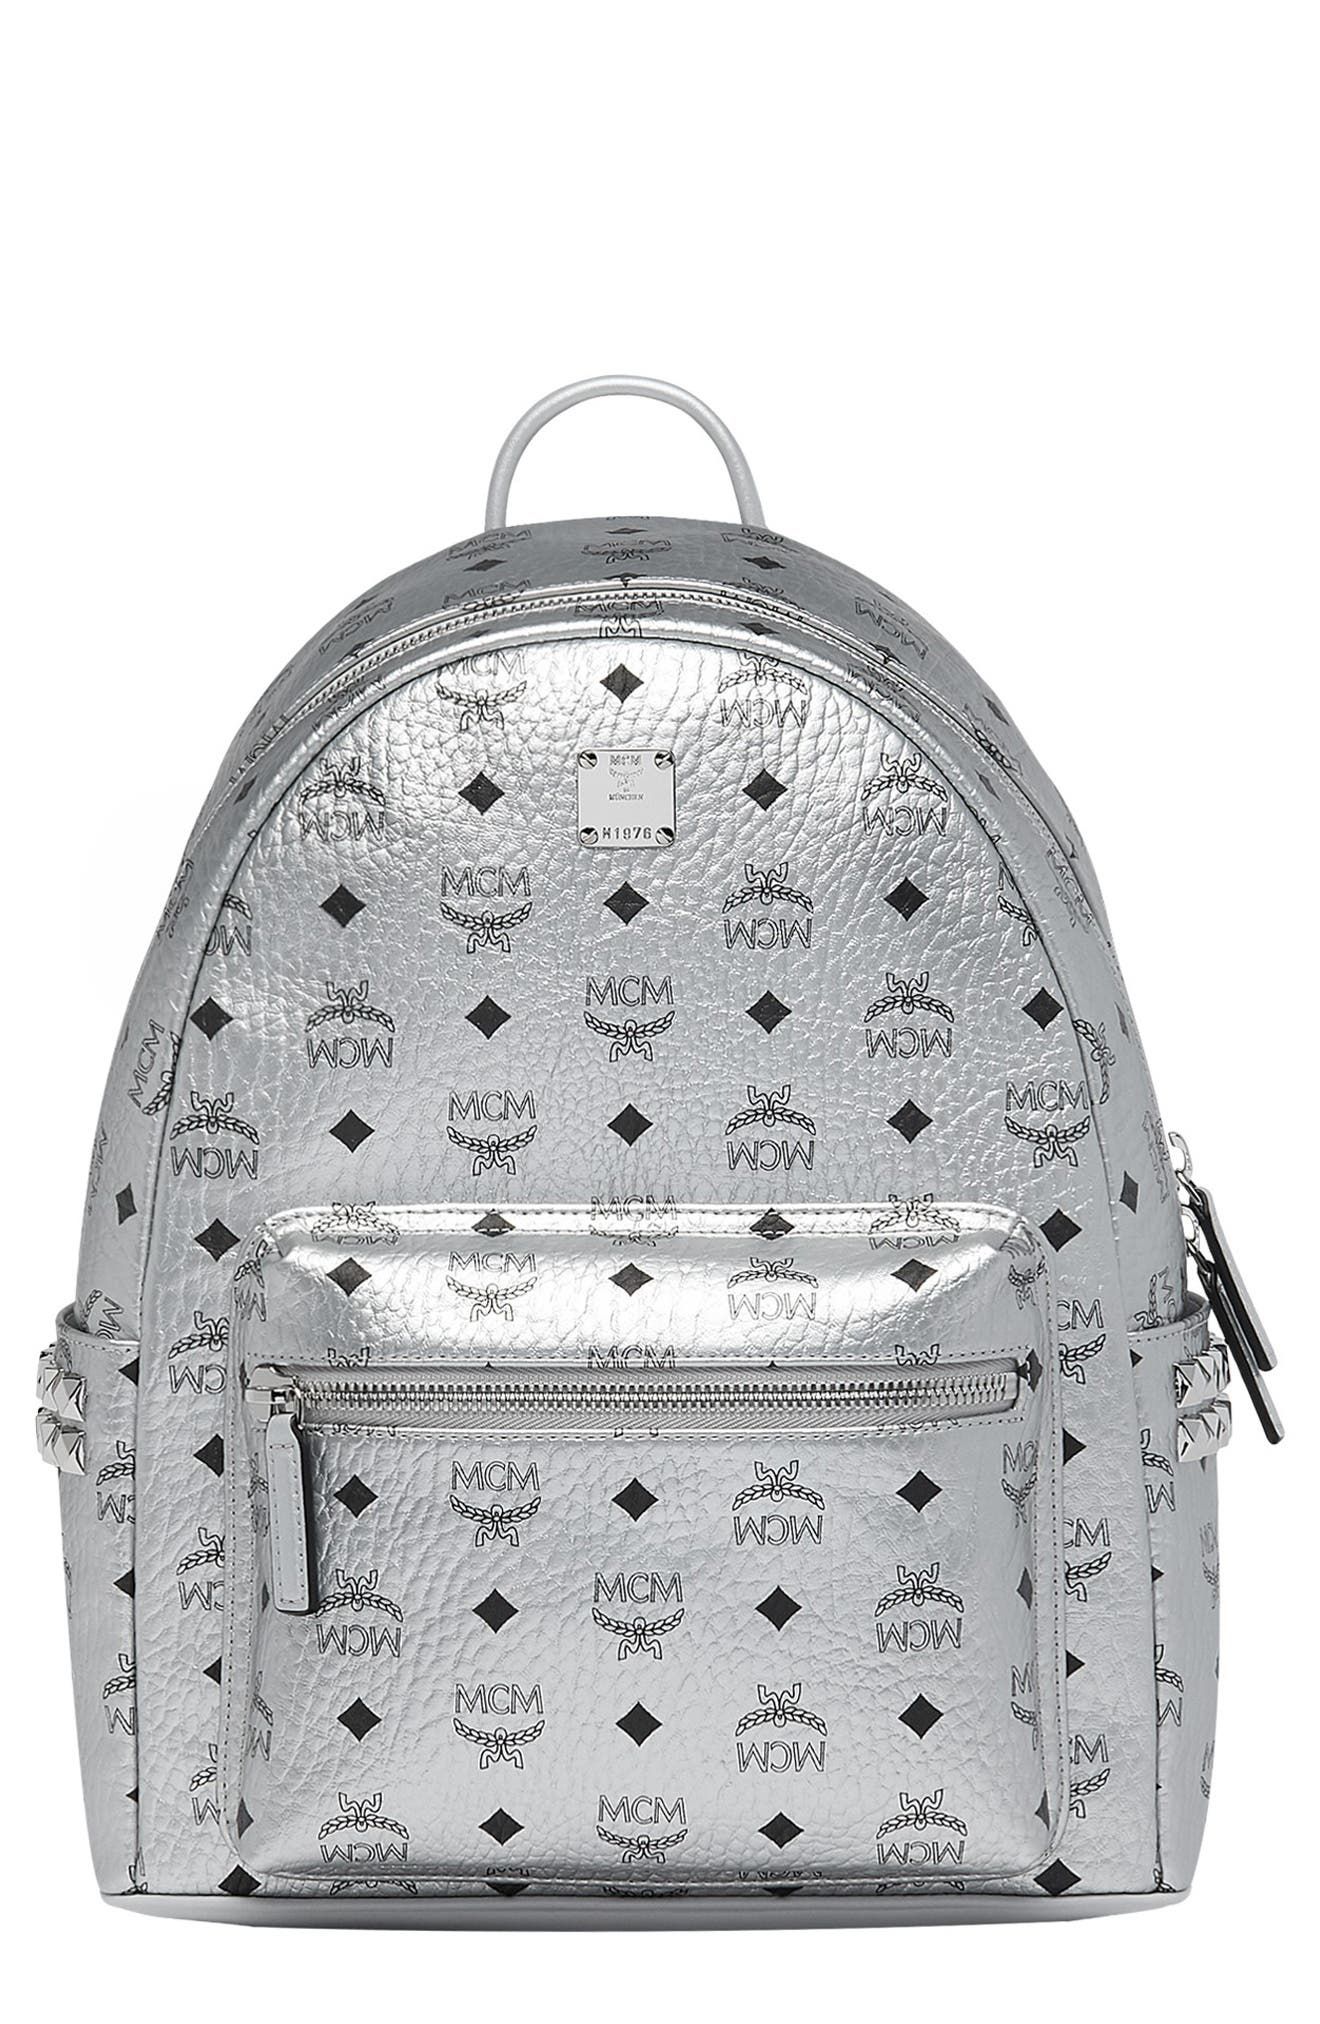 Small Stark Side Stud Metallic Faux Leather Backpack,                             Main thumbnail 1, color,                             BERLIN SILVER